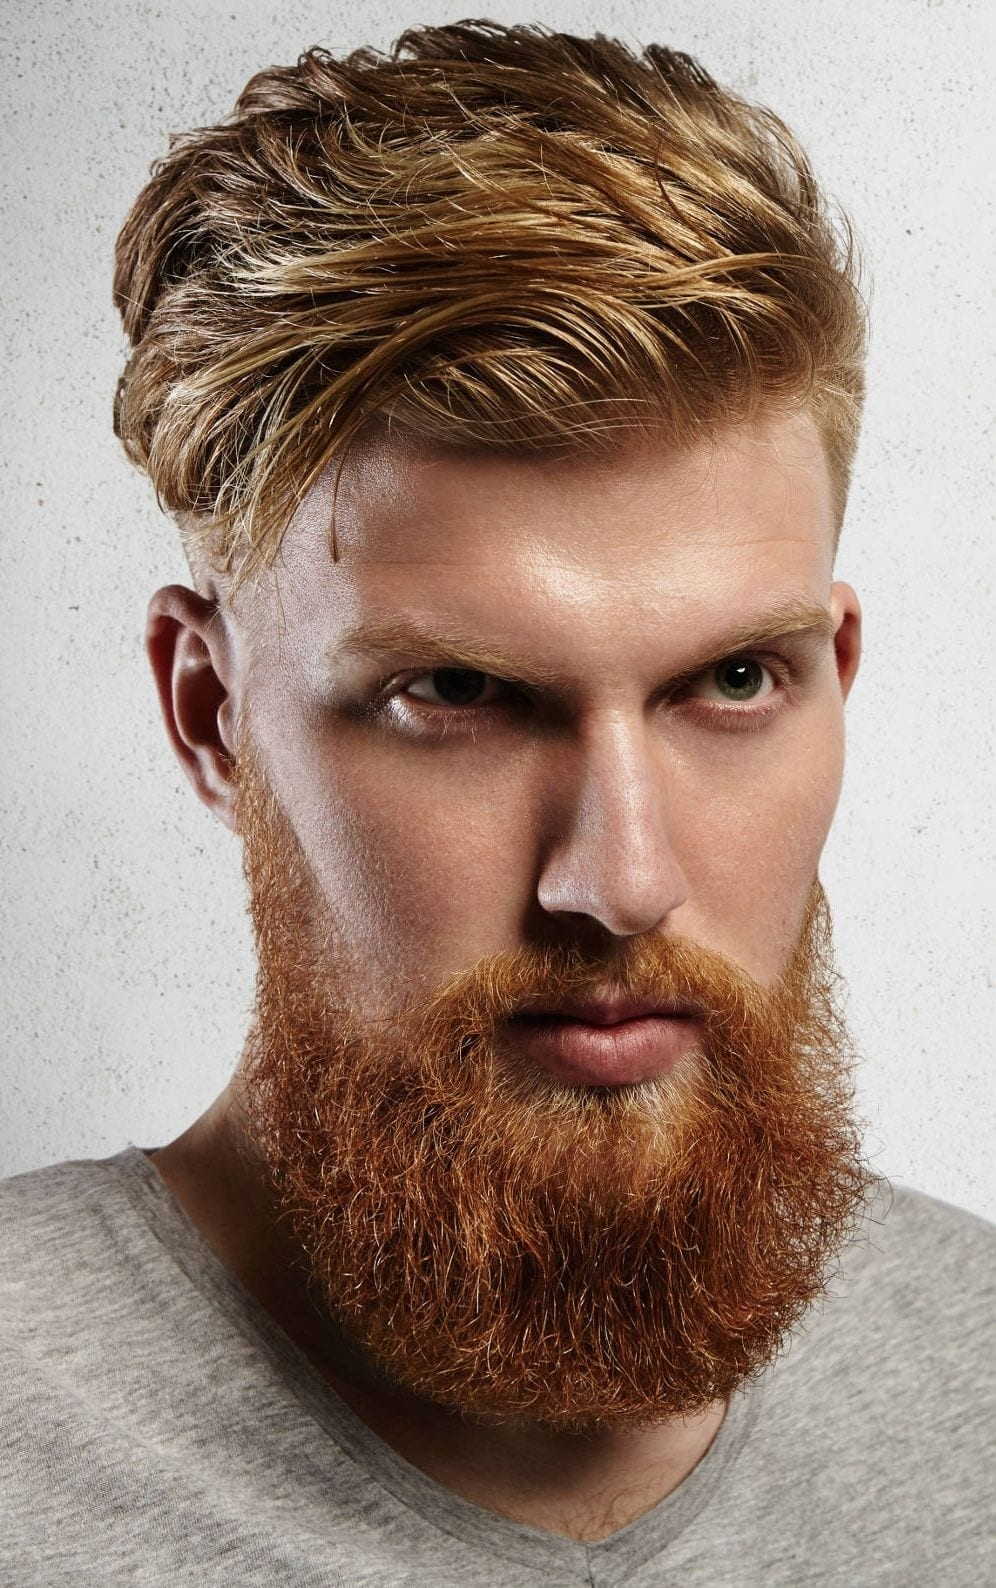 Hairstyles For Ginger Men Wavy Haircut